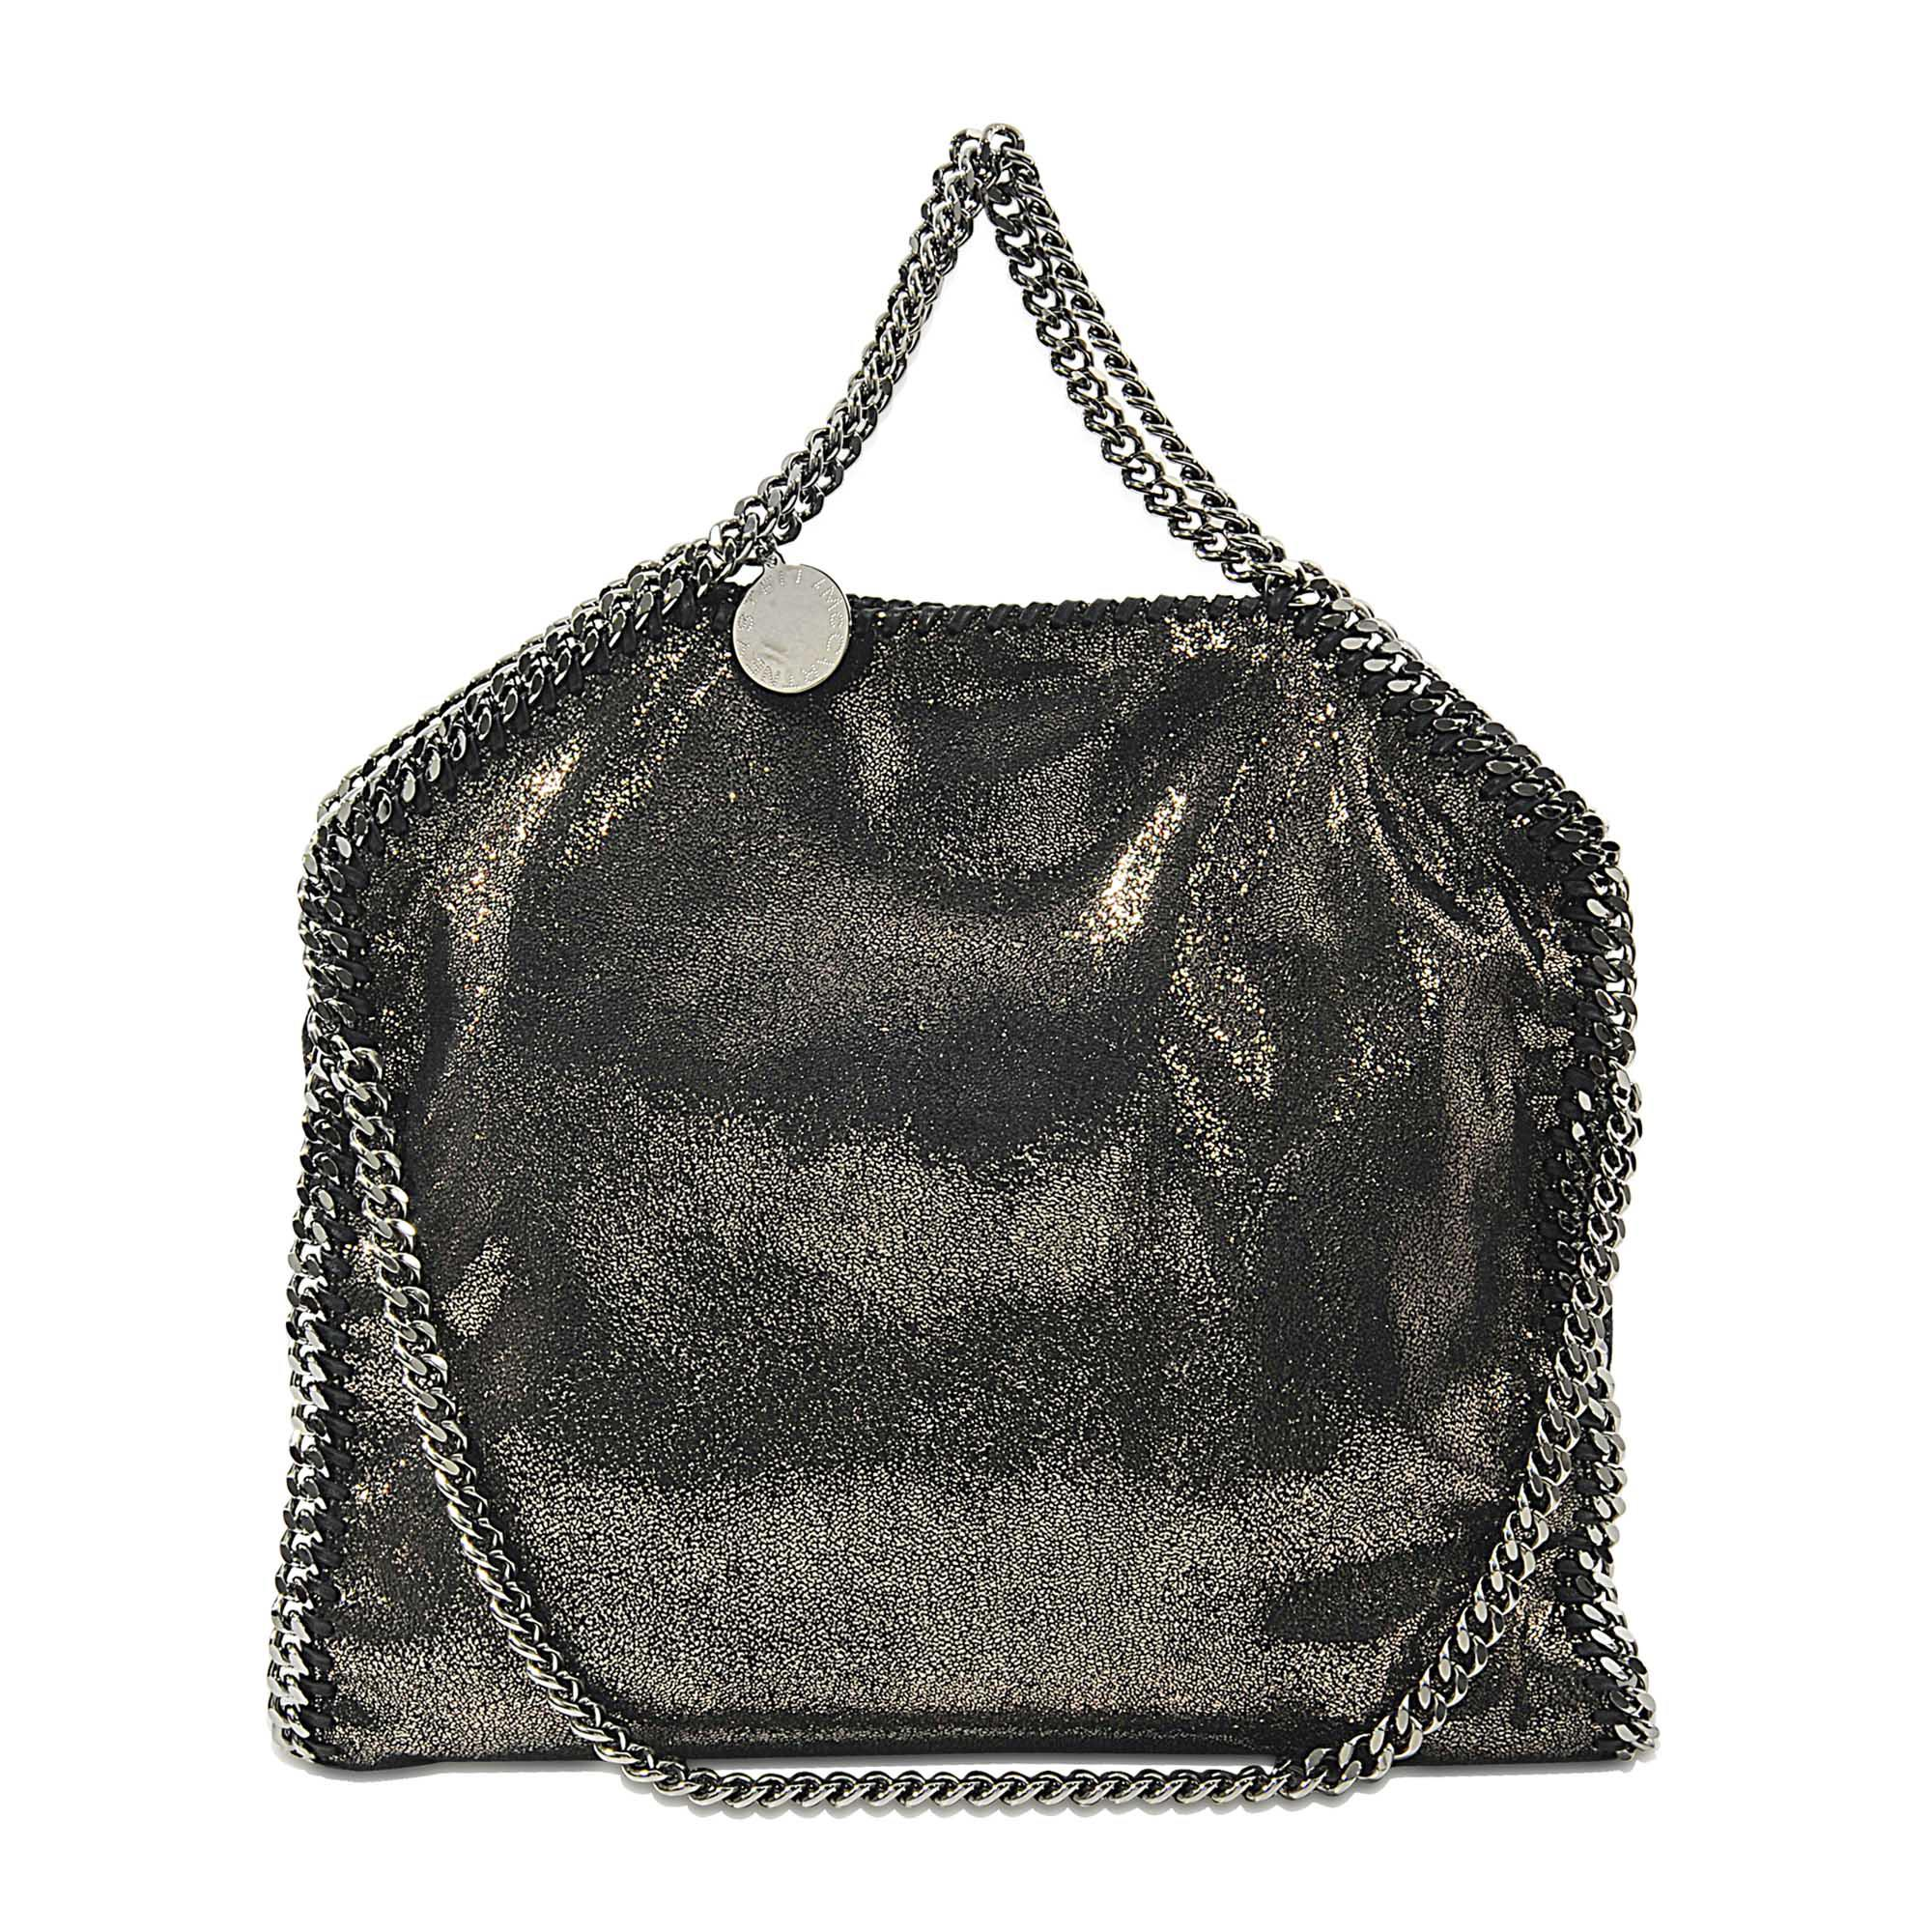 Falabella 3 Coloris Mccartney En Sac Stella Deer Black Chaines Shaggy ED9WH2I